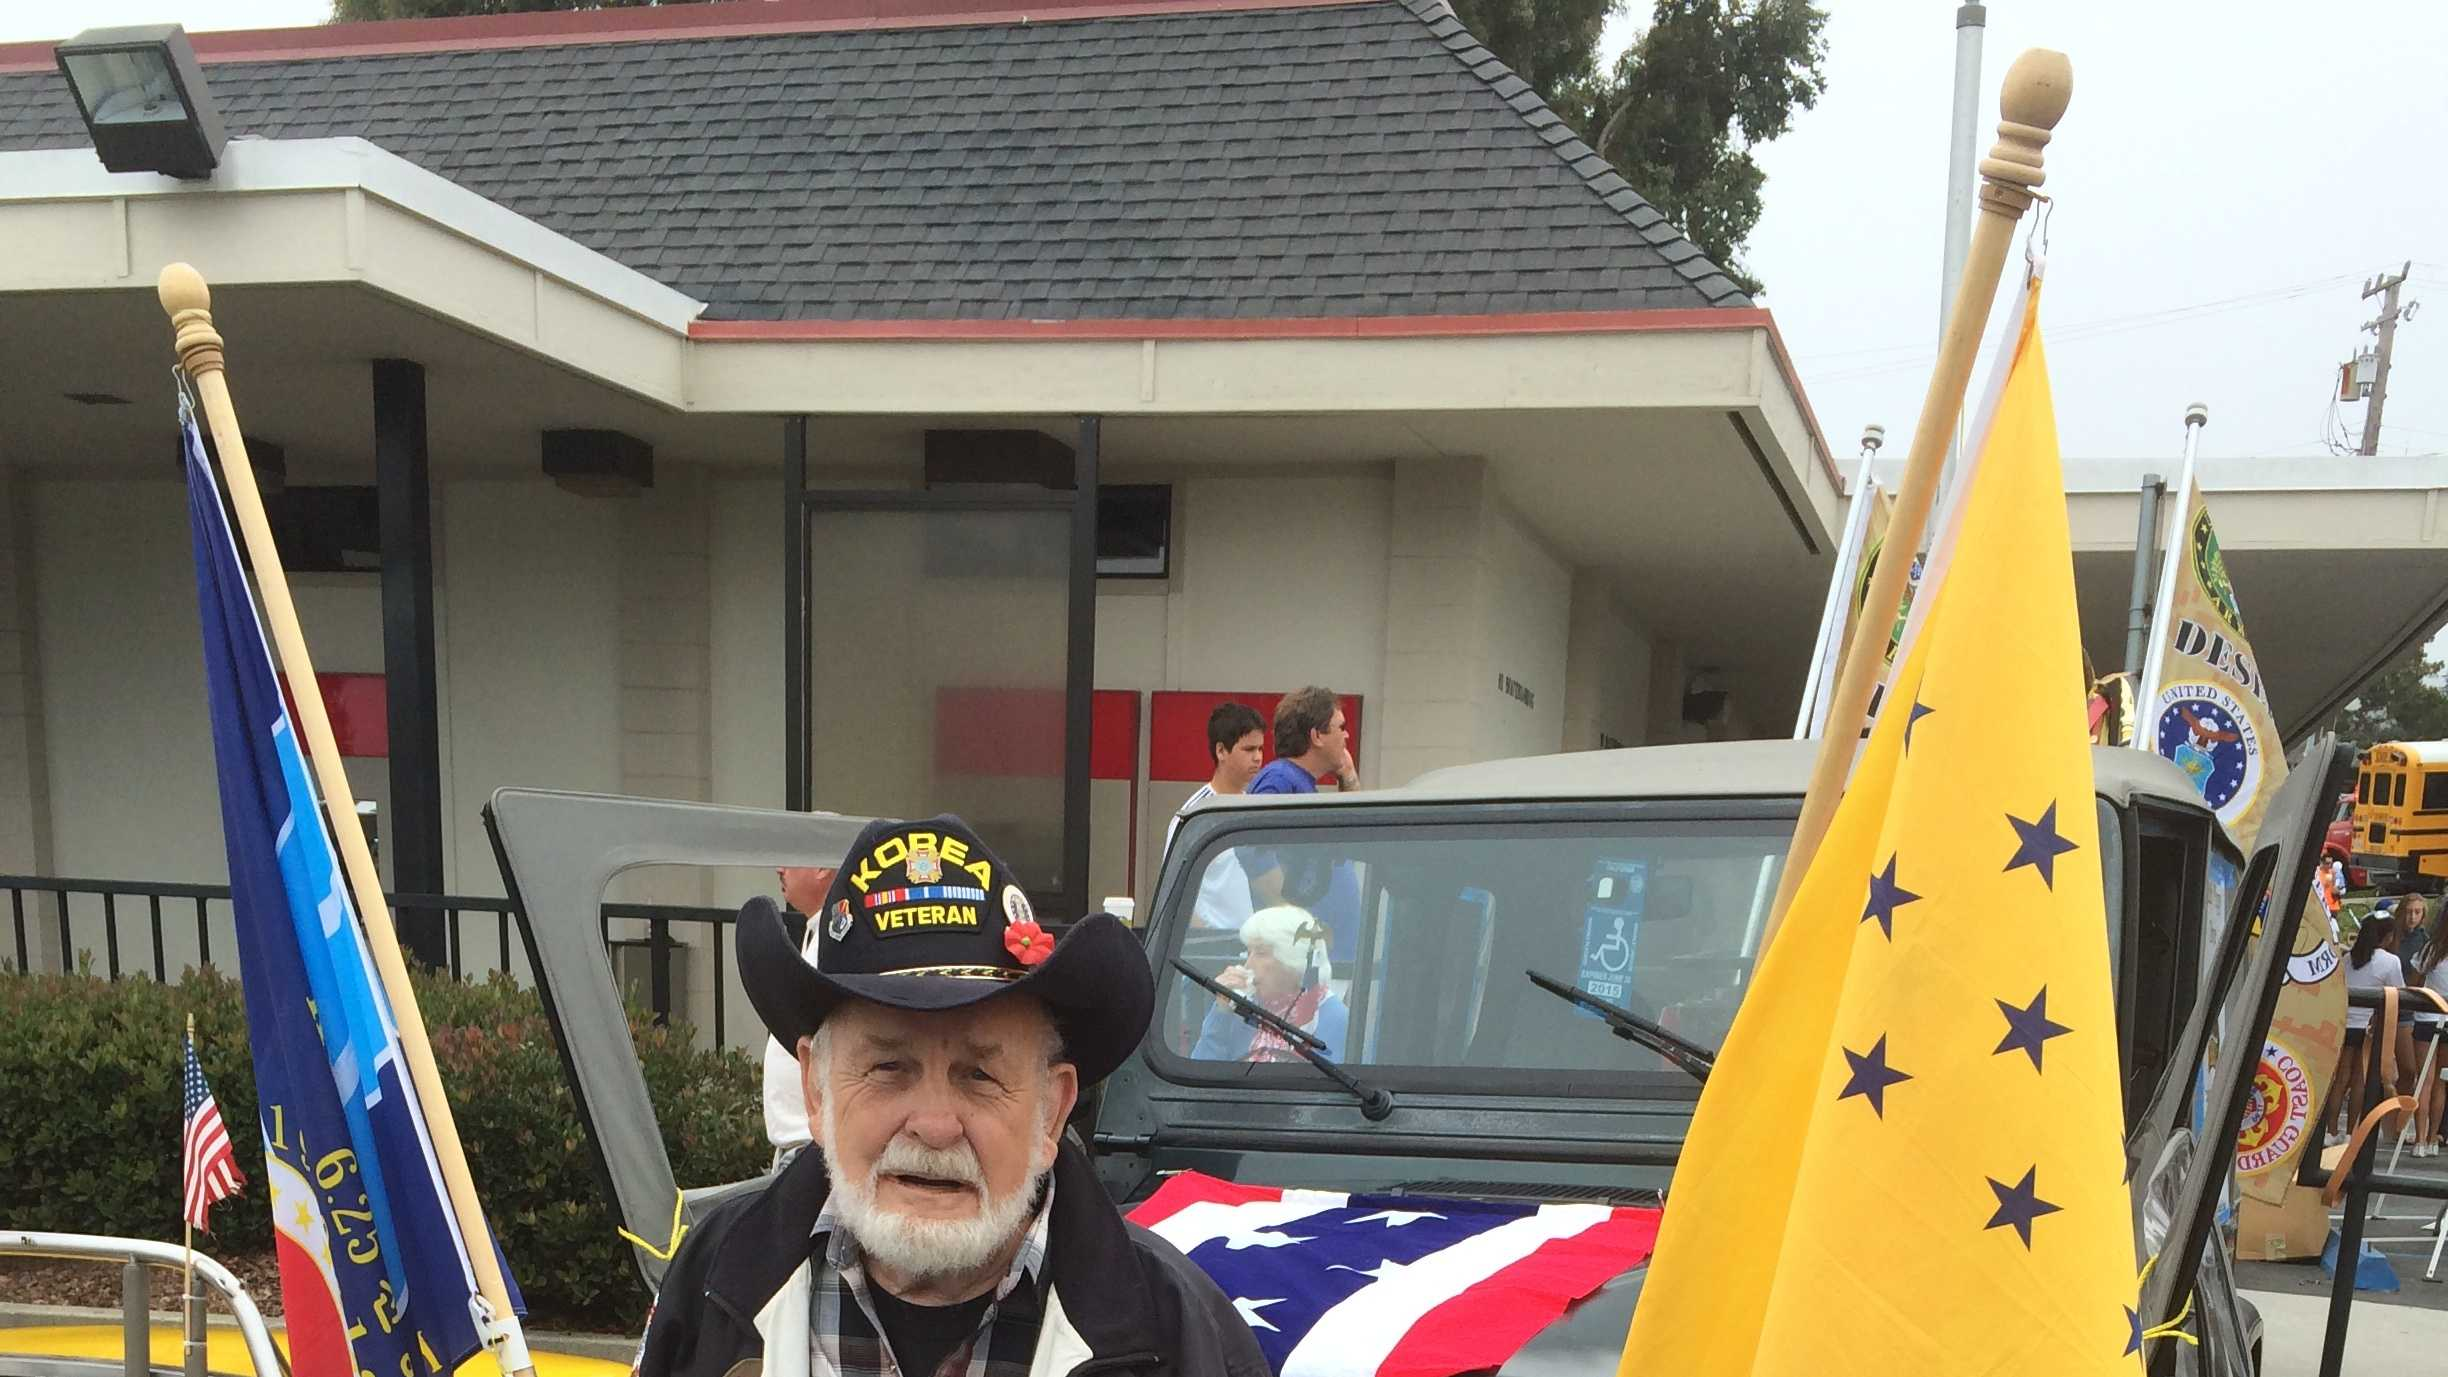 Korean War veteran Jim Brush poses with his jeep before Friday's World's Shortest Parade in Aptos